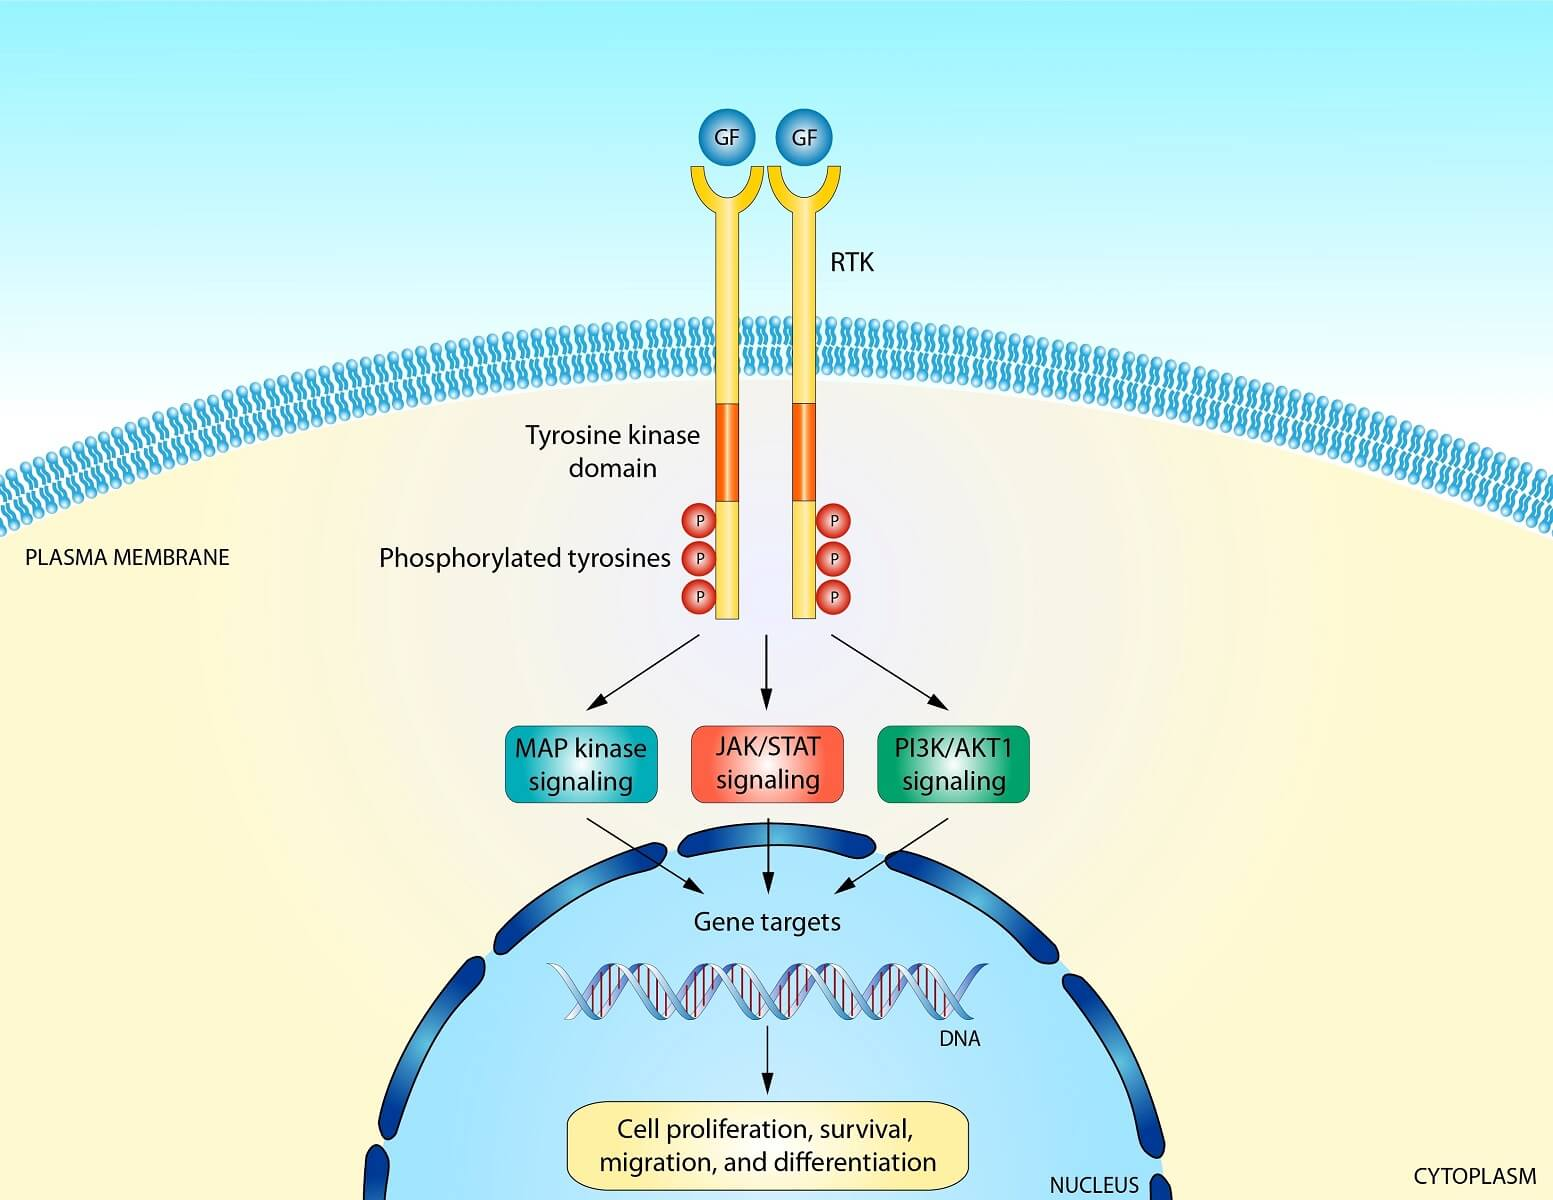 Receptor Tyrosine Kinase Proteins in the RTK pathway are known for dimerization